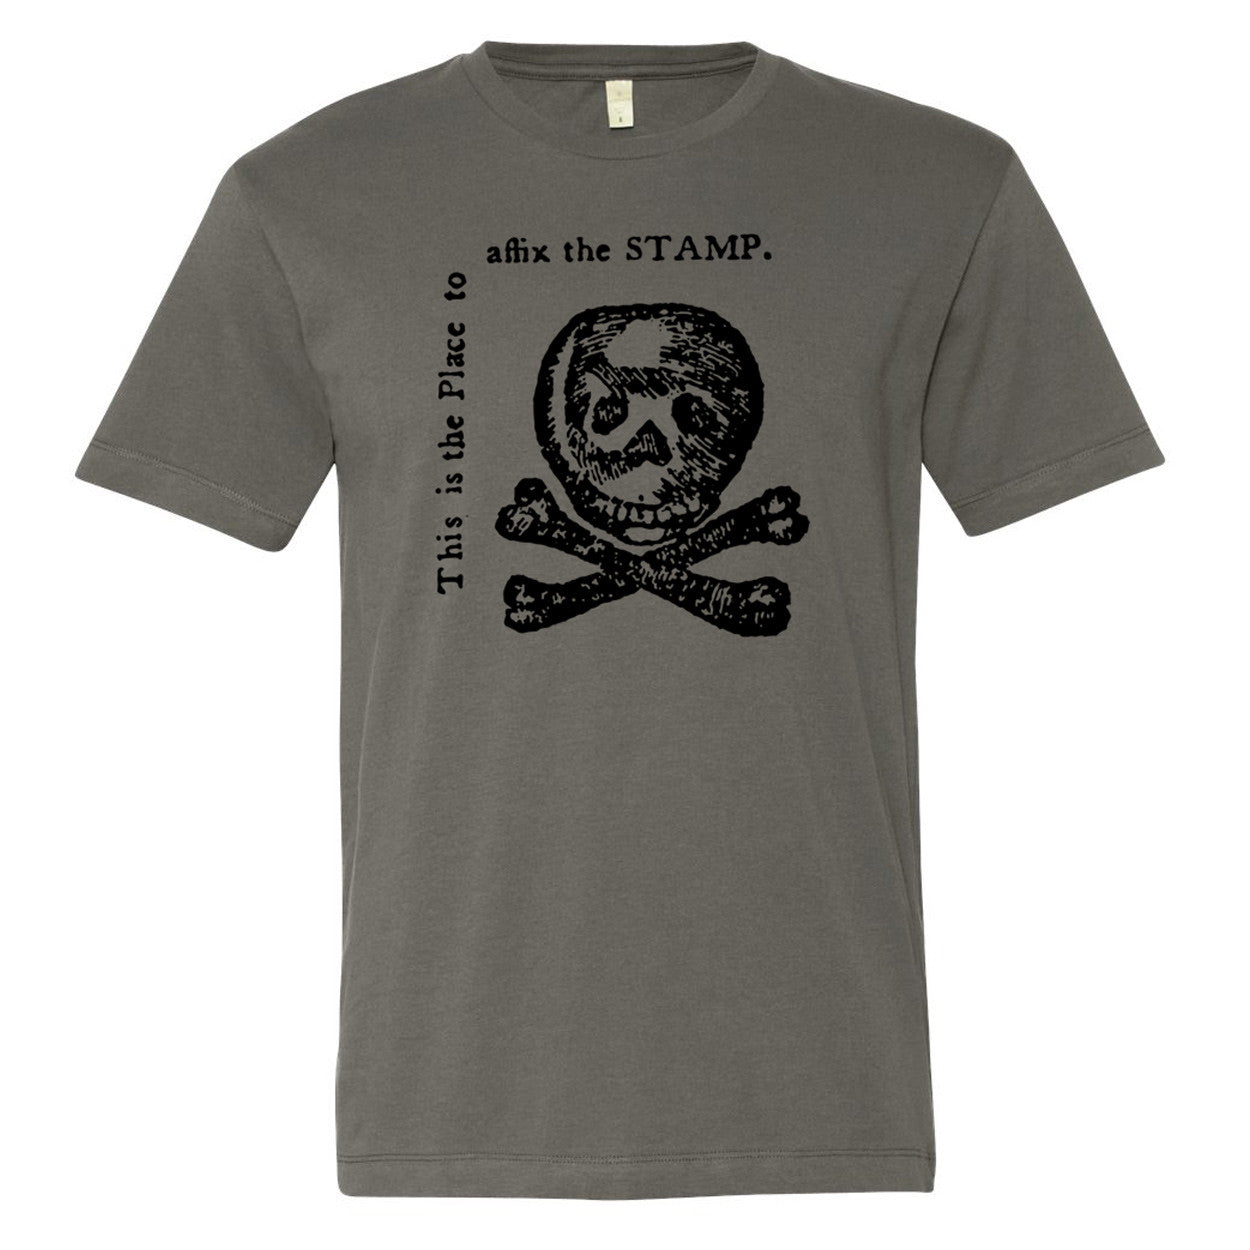 b2fbf3c100d Stamp Act Satire Vintage Graphic T-Shirt - Liberty Maniacs